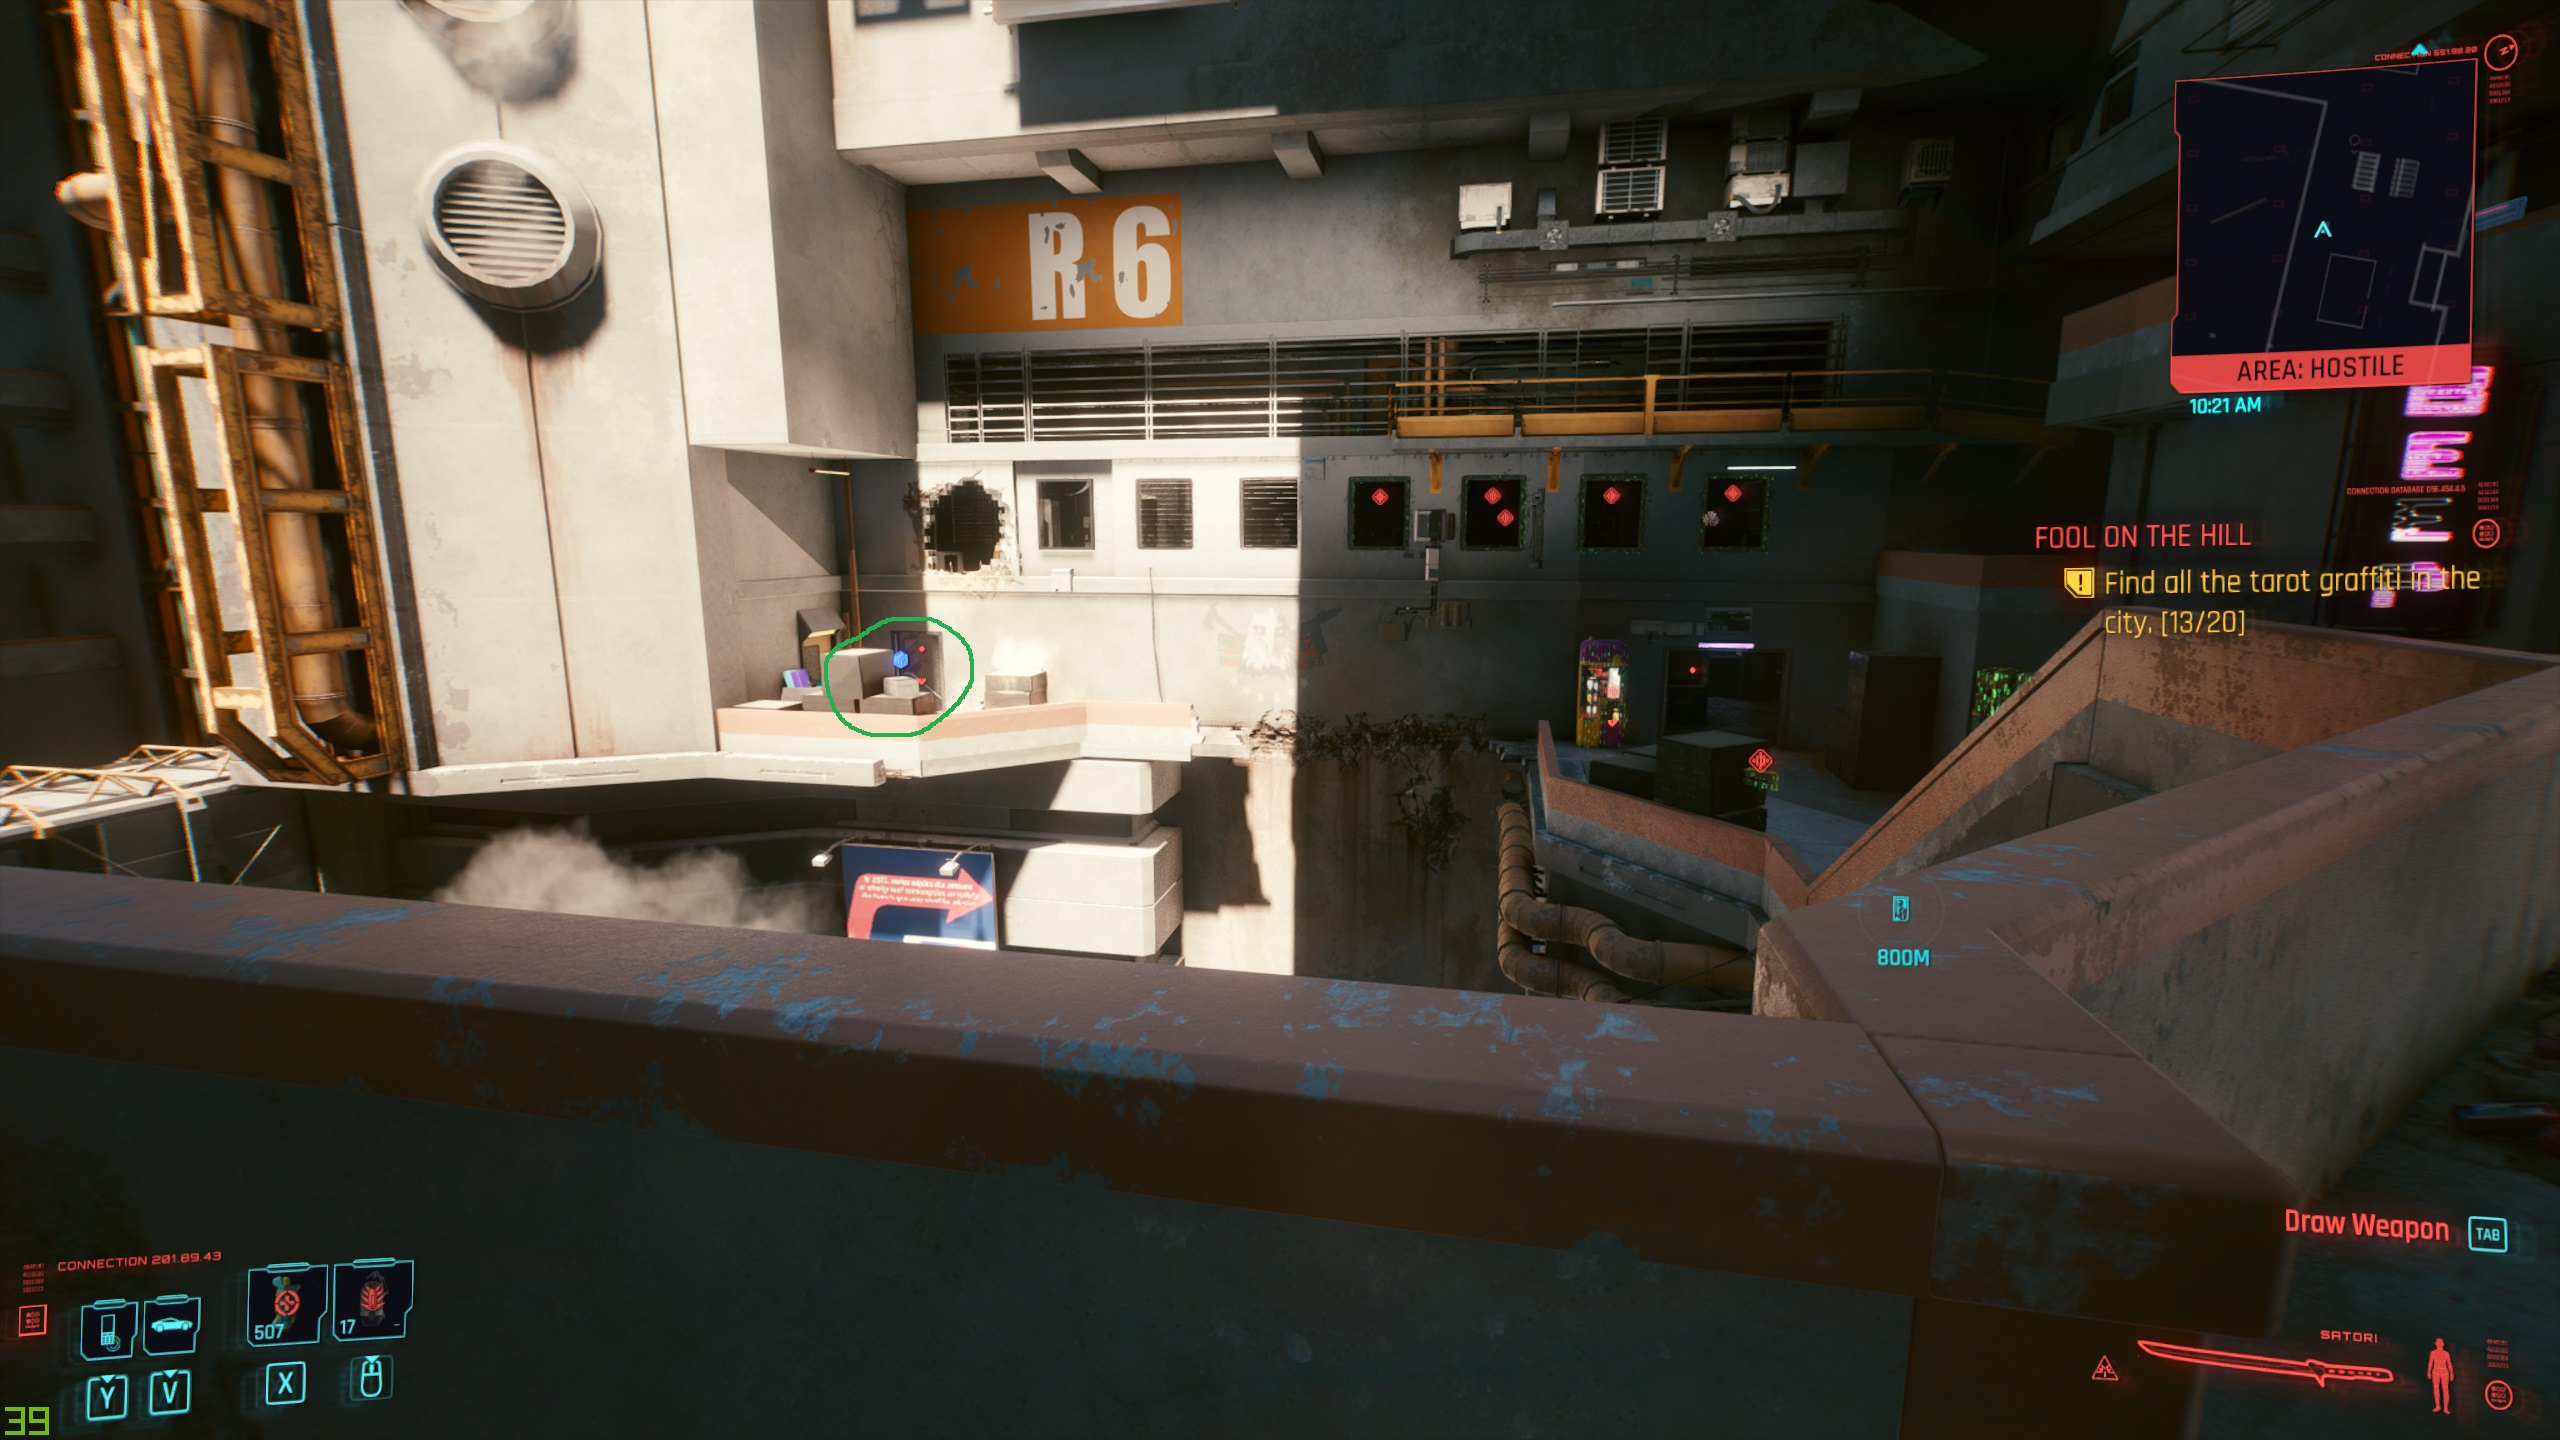 H6 Container A location.jpg